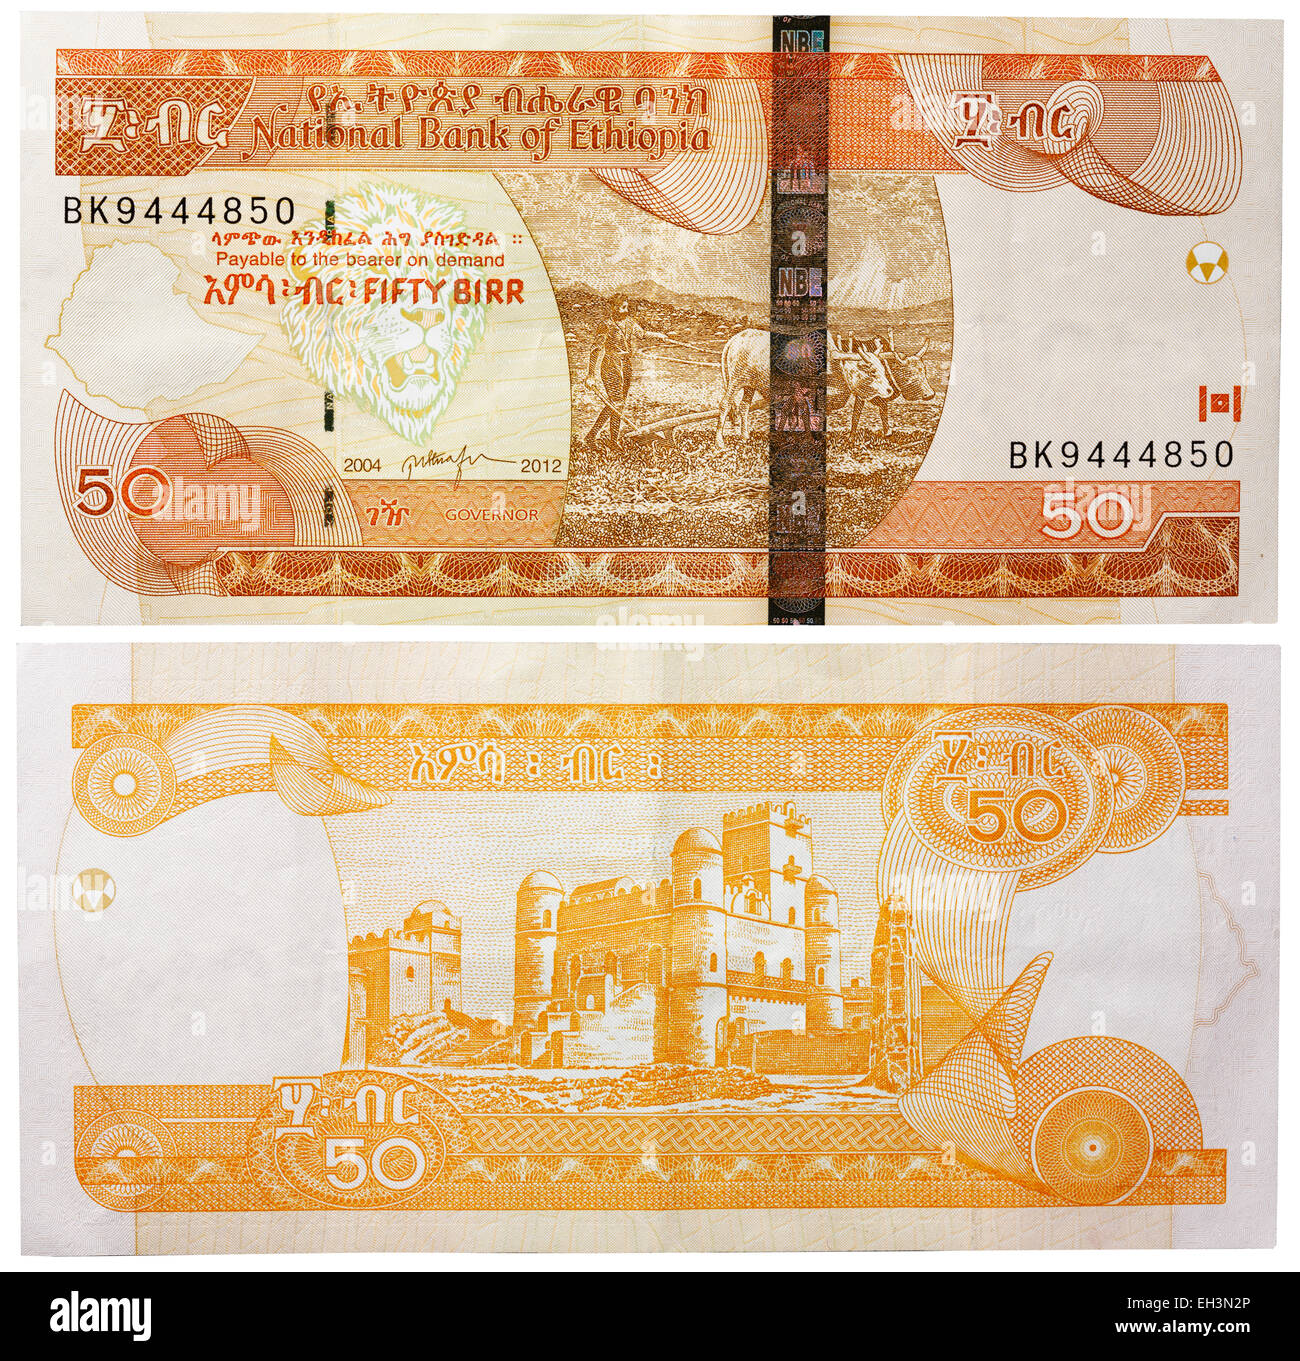 50 birr banknote, farmer ploughing and Fasilides Castle in Gondar, Ethiopia, 2012 - Stock Image